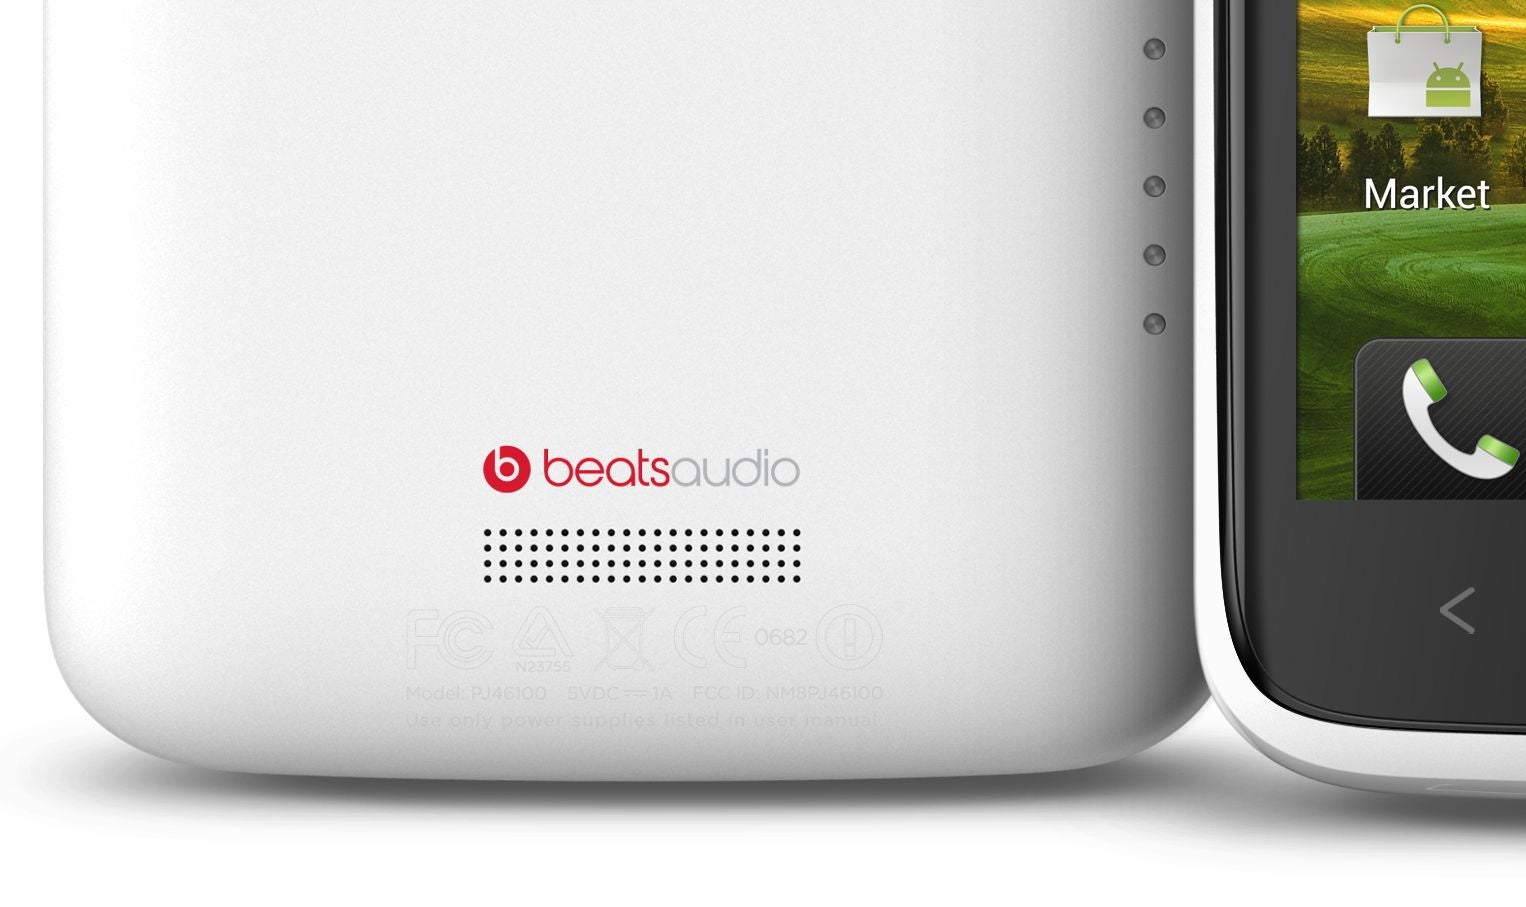 Beats Audio Buys Back Control From Htc Trusted Reviews